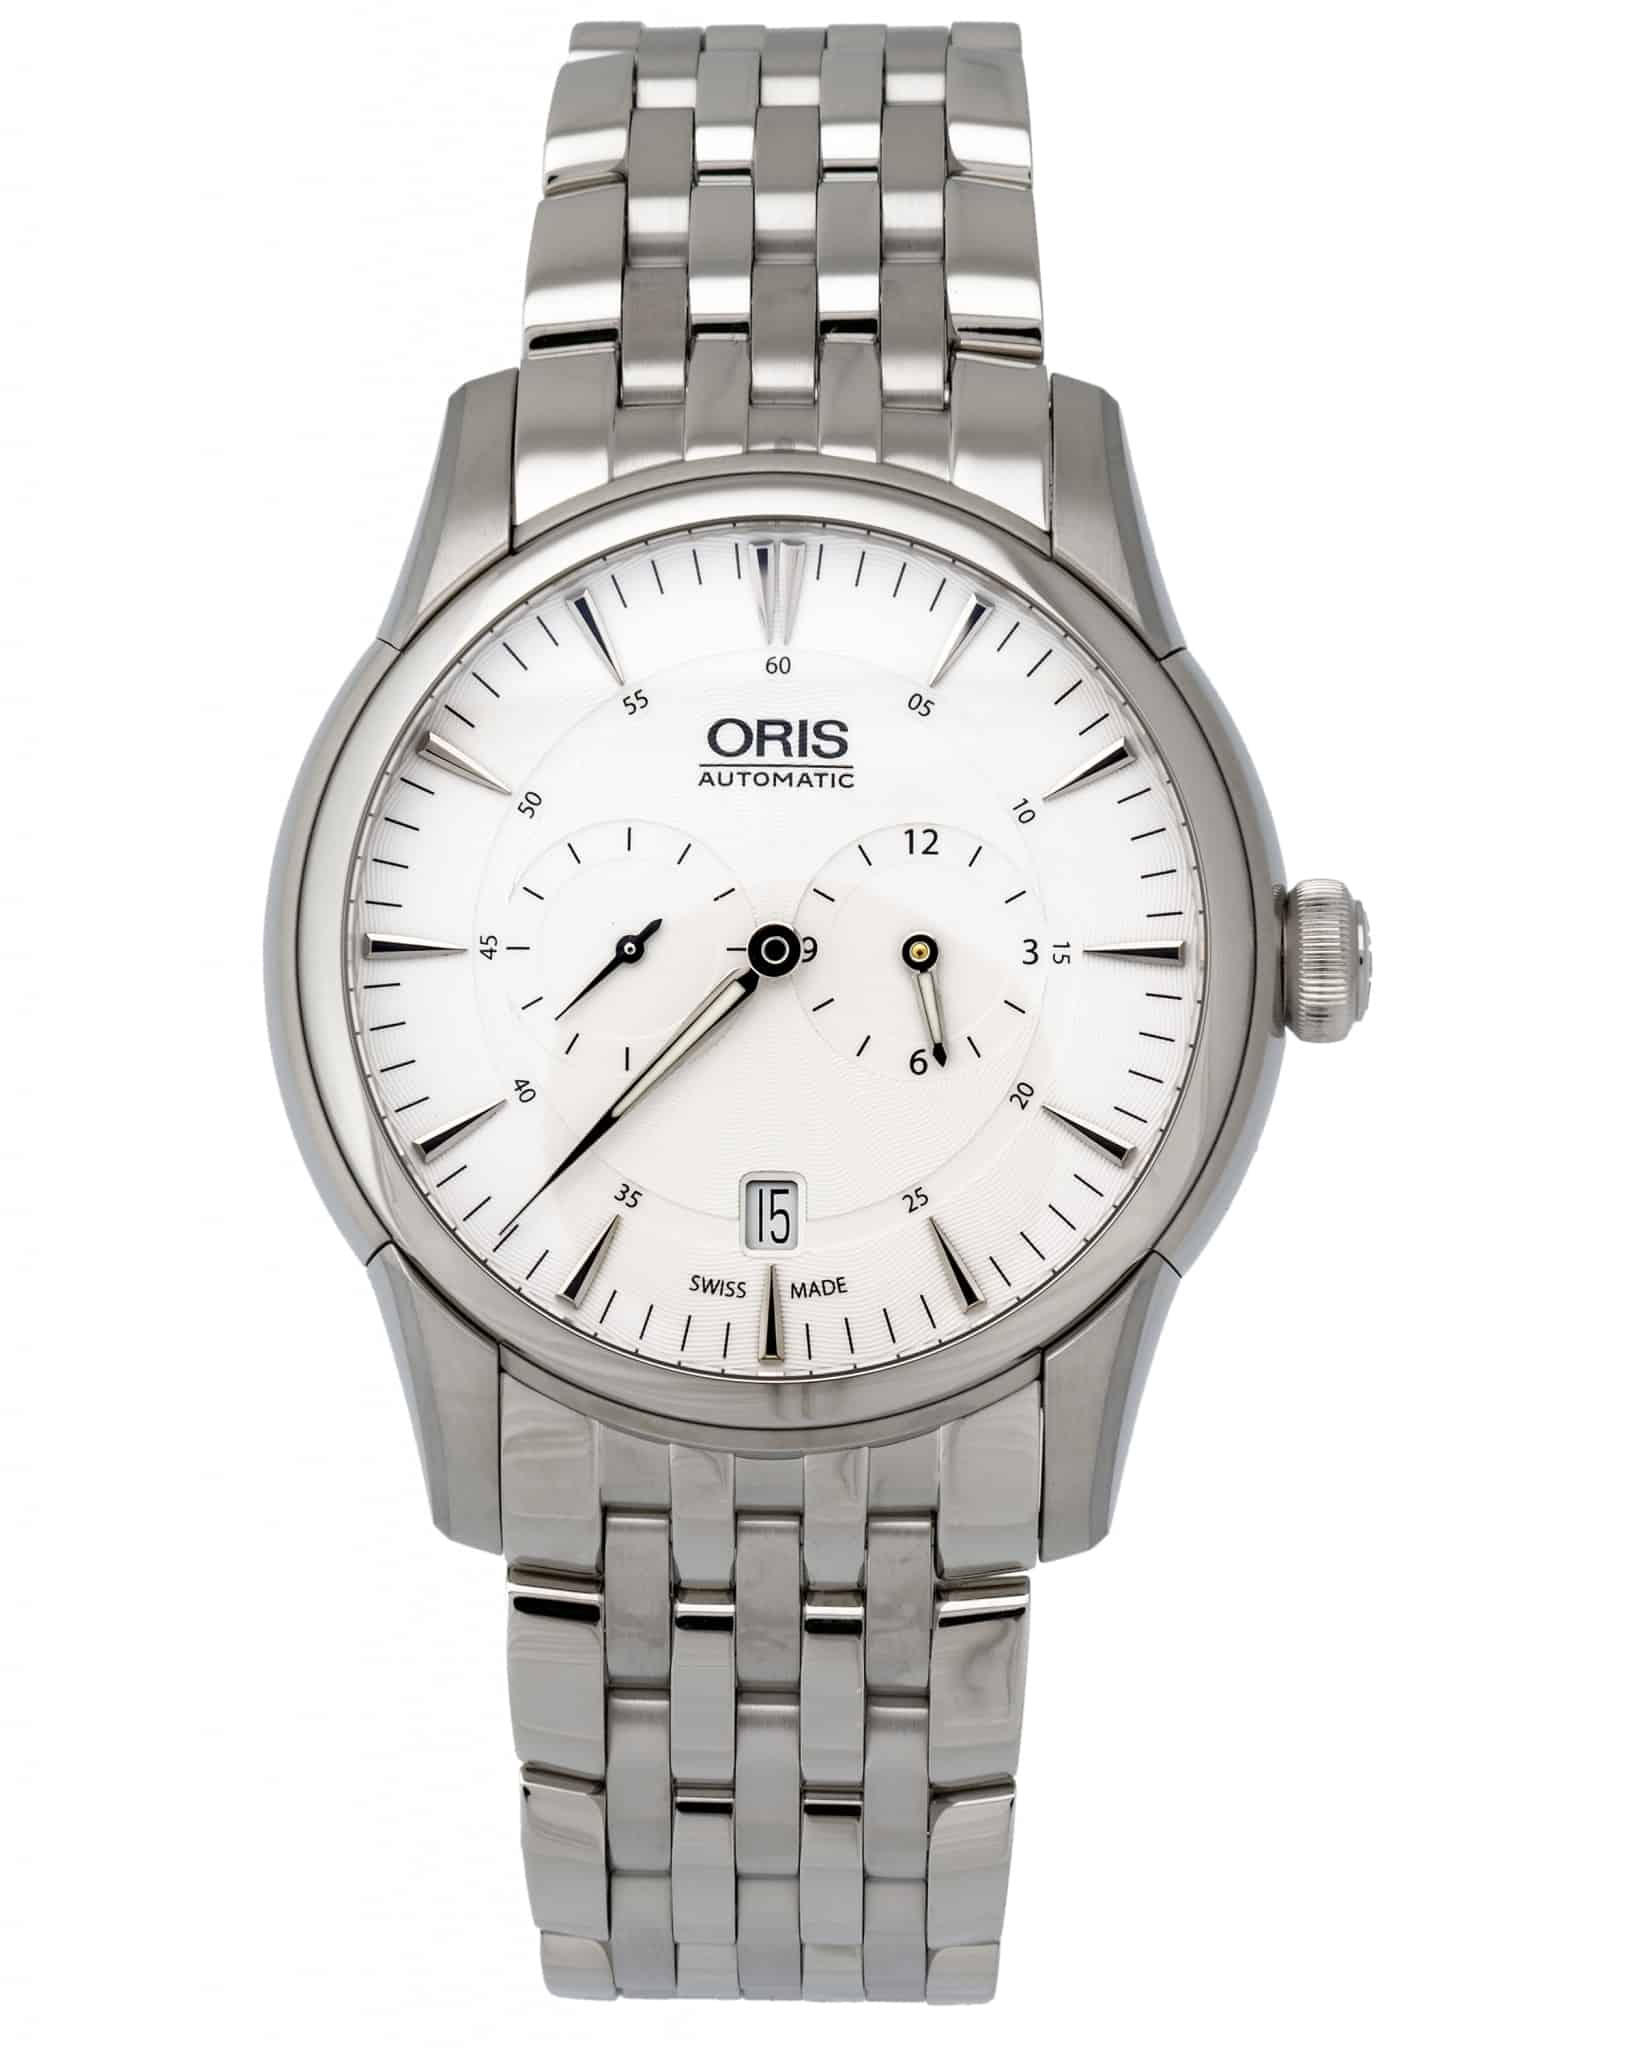 Oris Artelier Regulateur Automatic Men's Watch – 749-7667-4051 SS